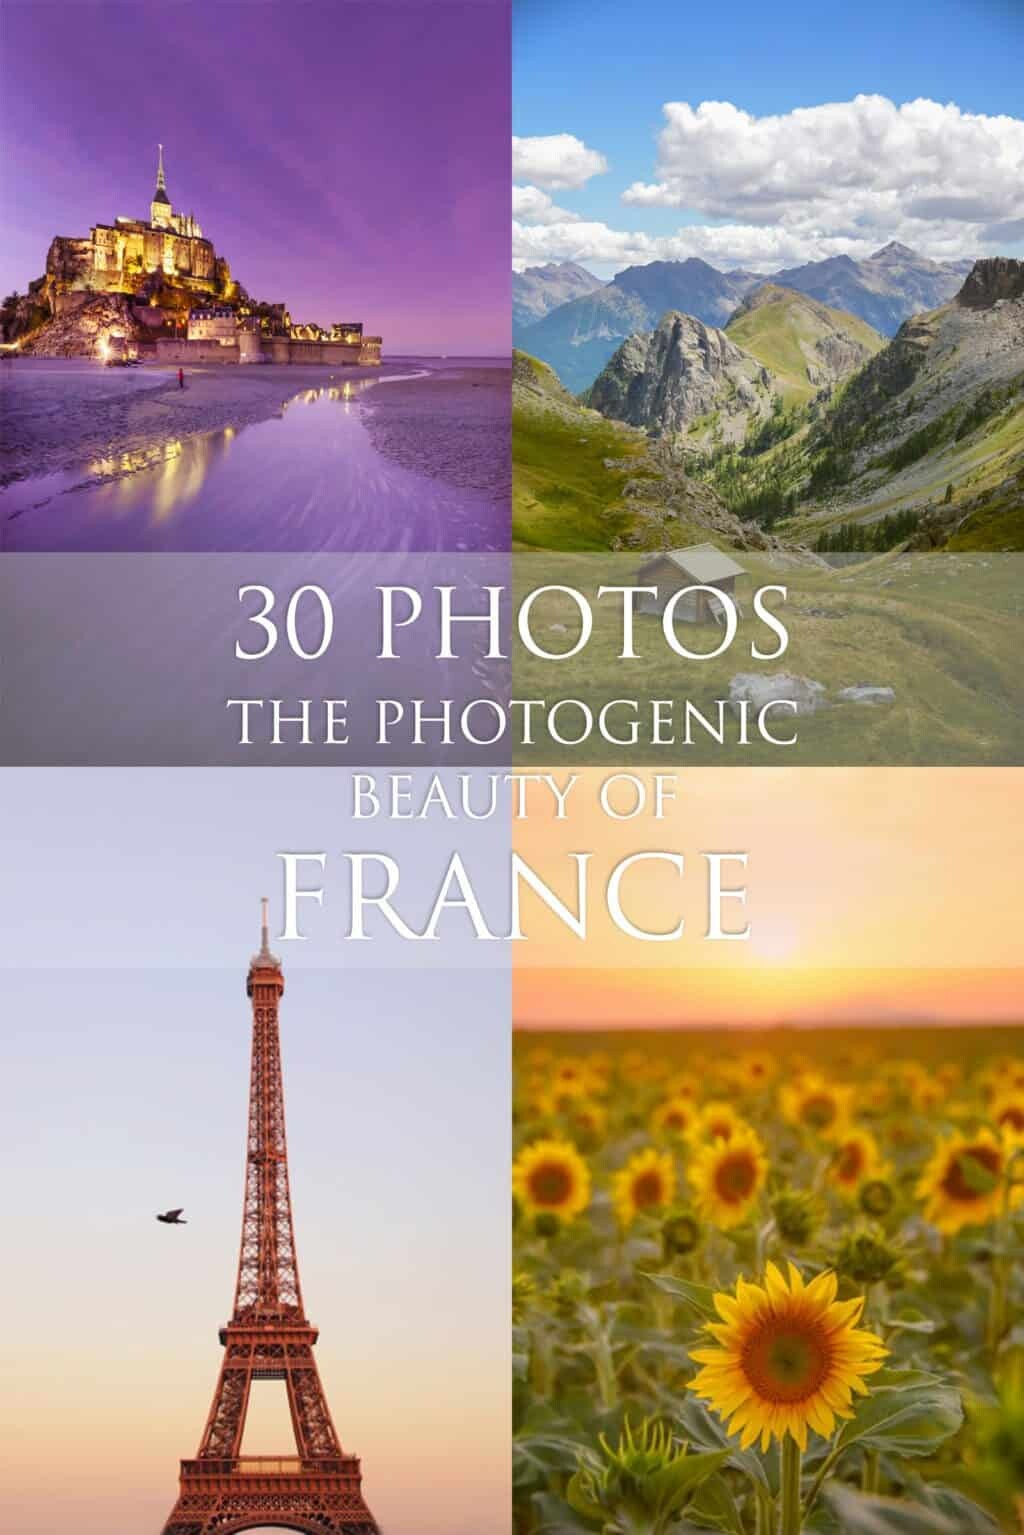 Travel in France, where to go in France and see natural beauty, outdoors experiences and Paris photo locations by The Wandering Lens